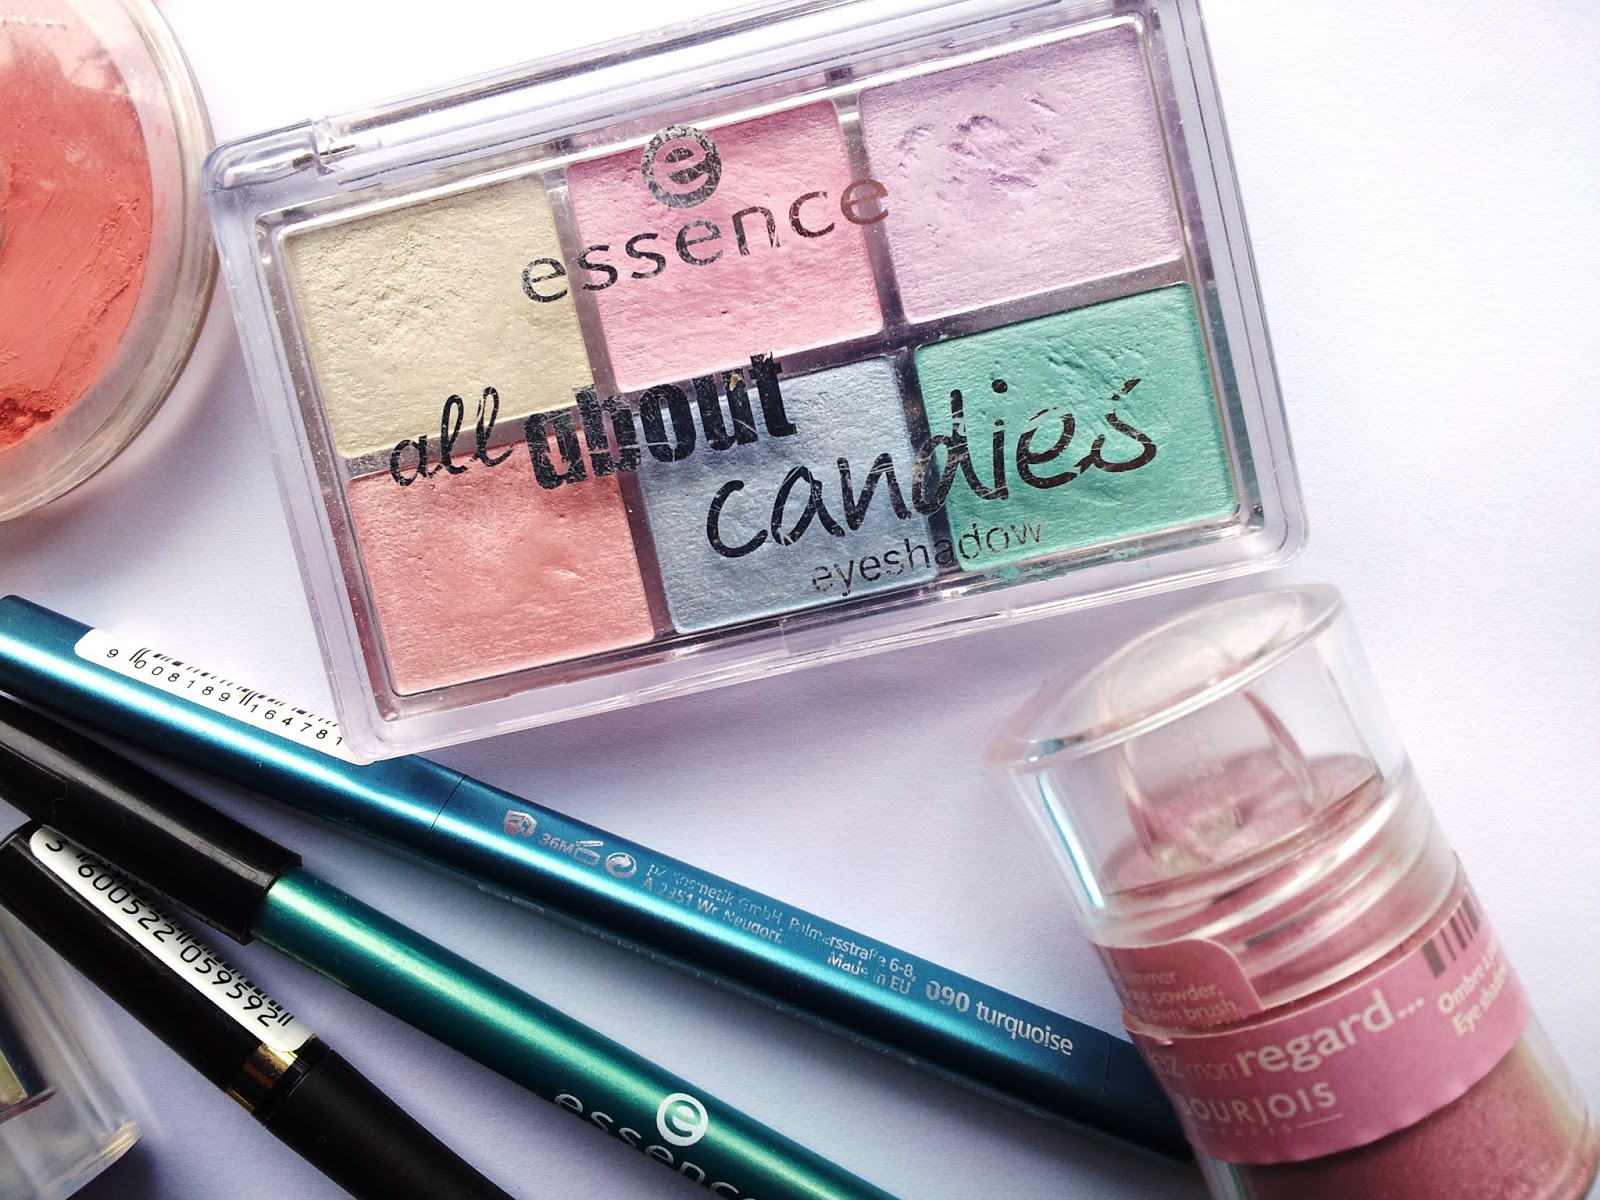 essence all about candies eyeshadow palette